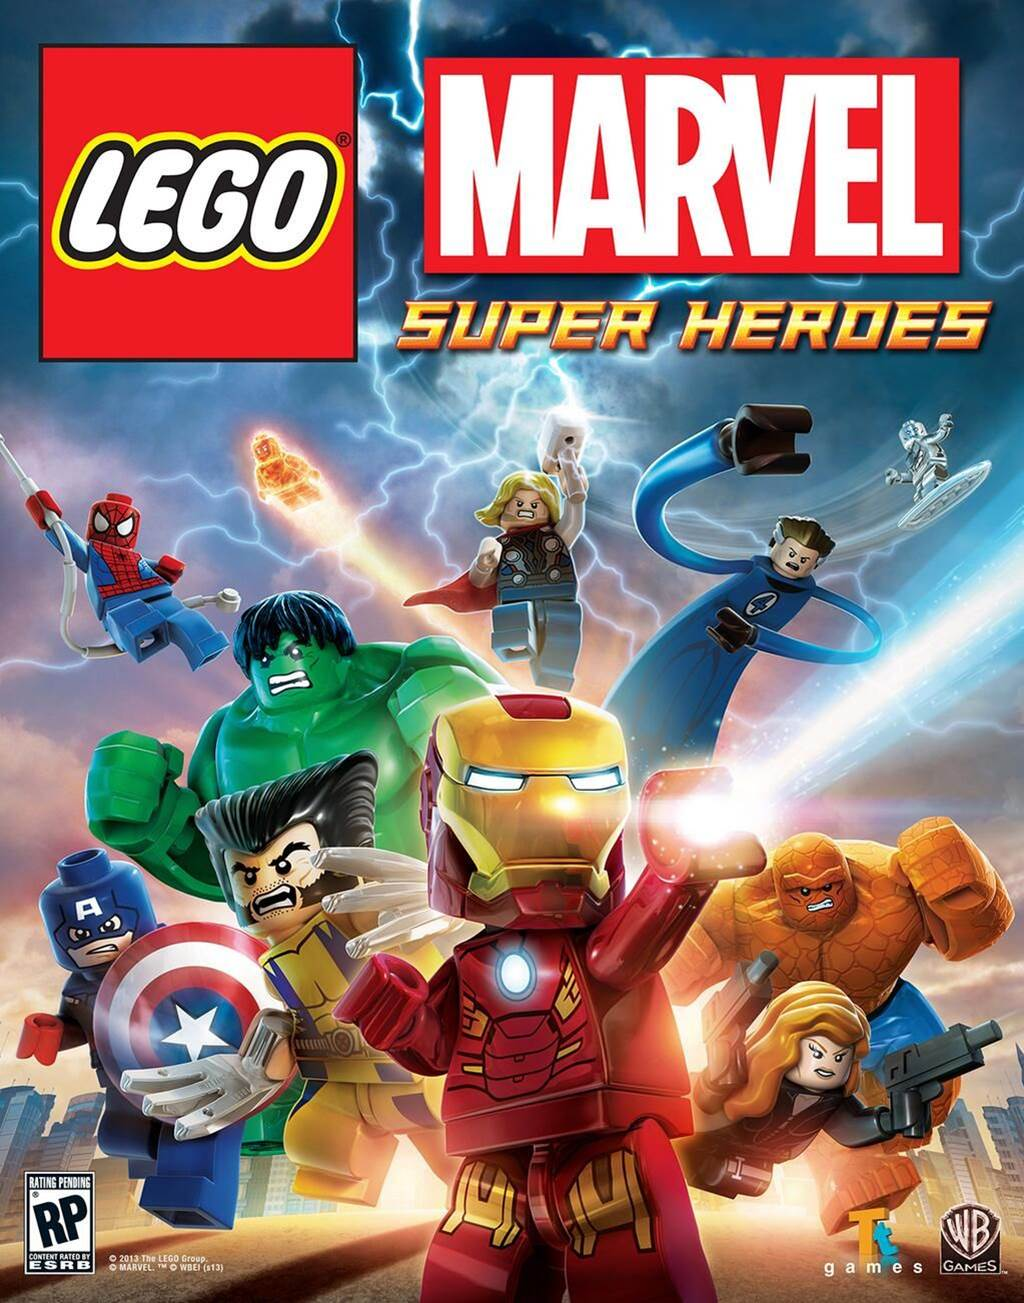 Lego Marvel Super Heroes Gaming Wallpapers Xcitefun Net